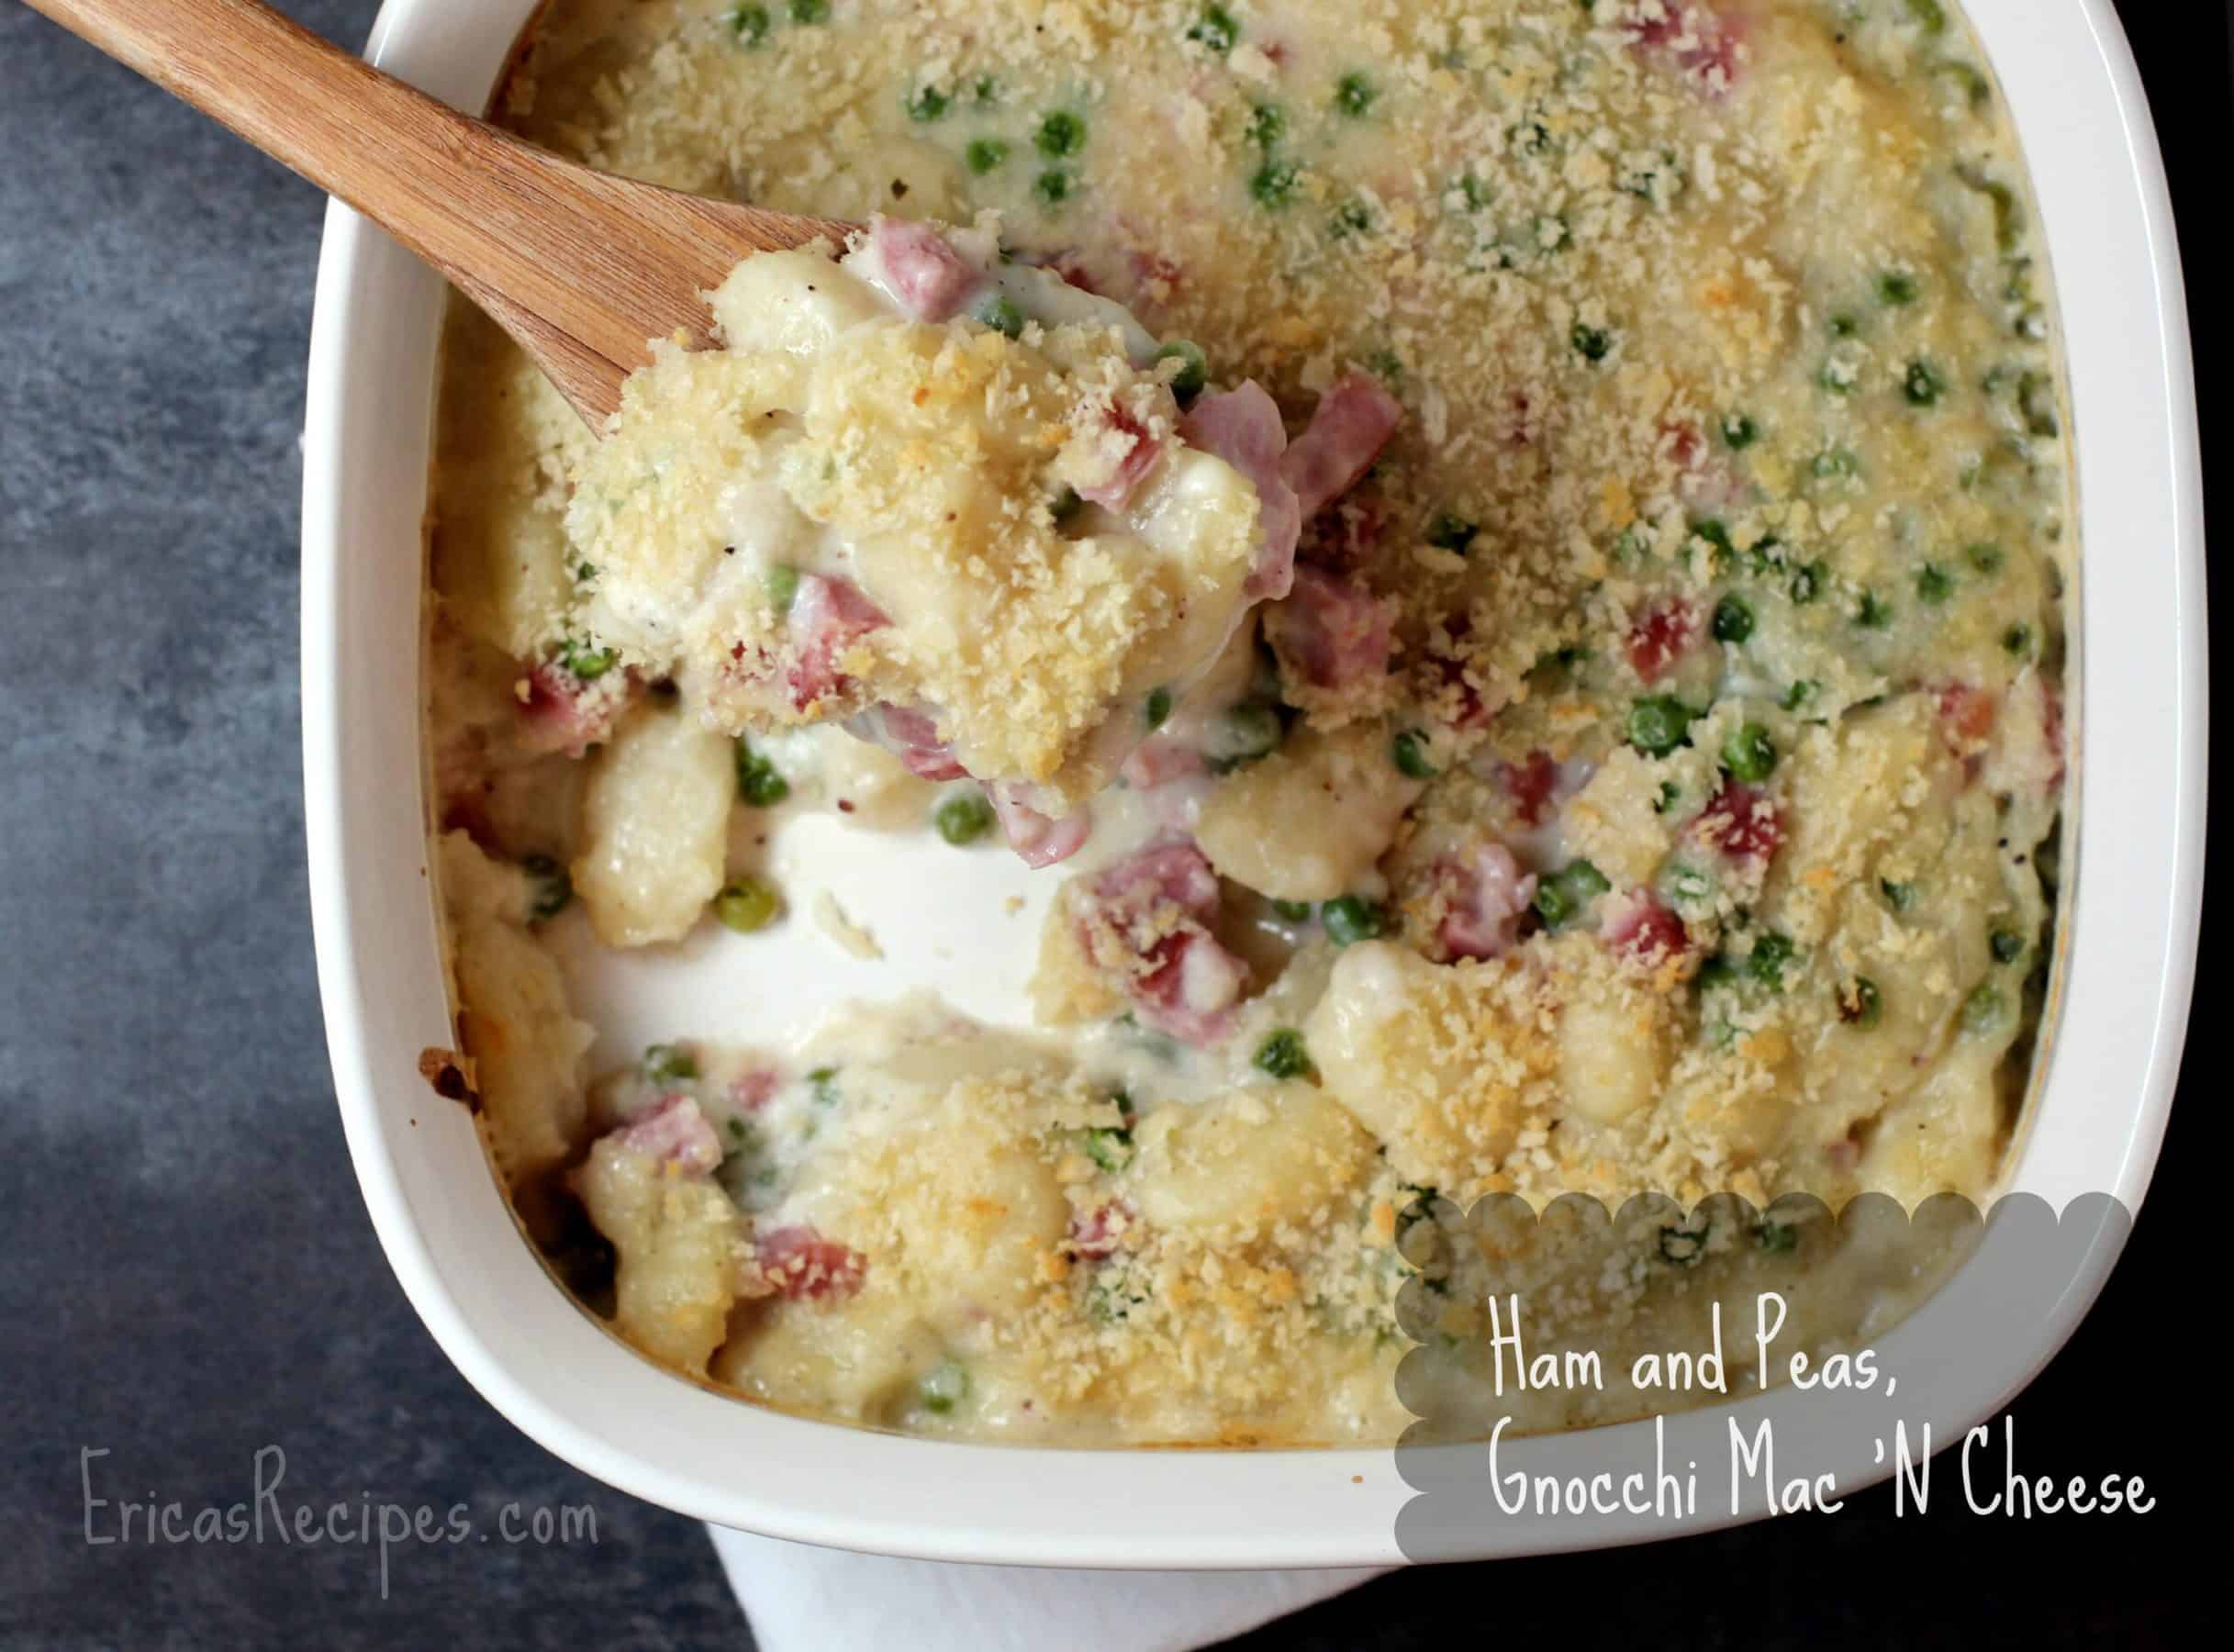 Gnocchi Mac 'N Cheese with Ham and Peas